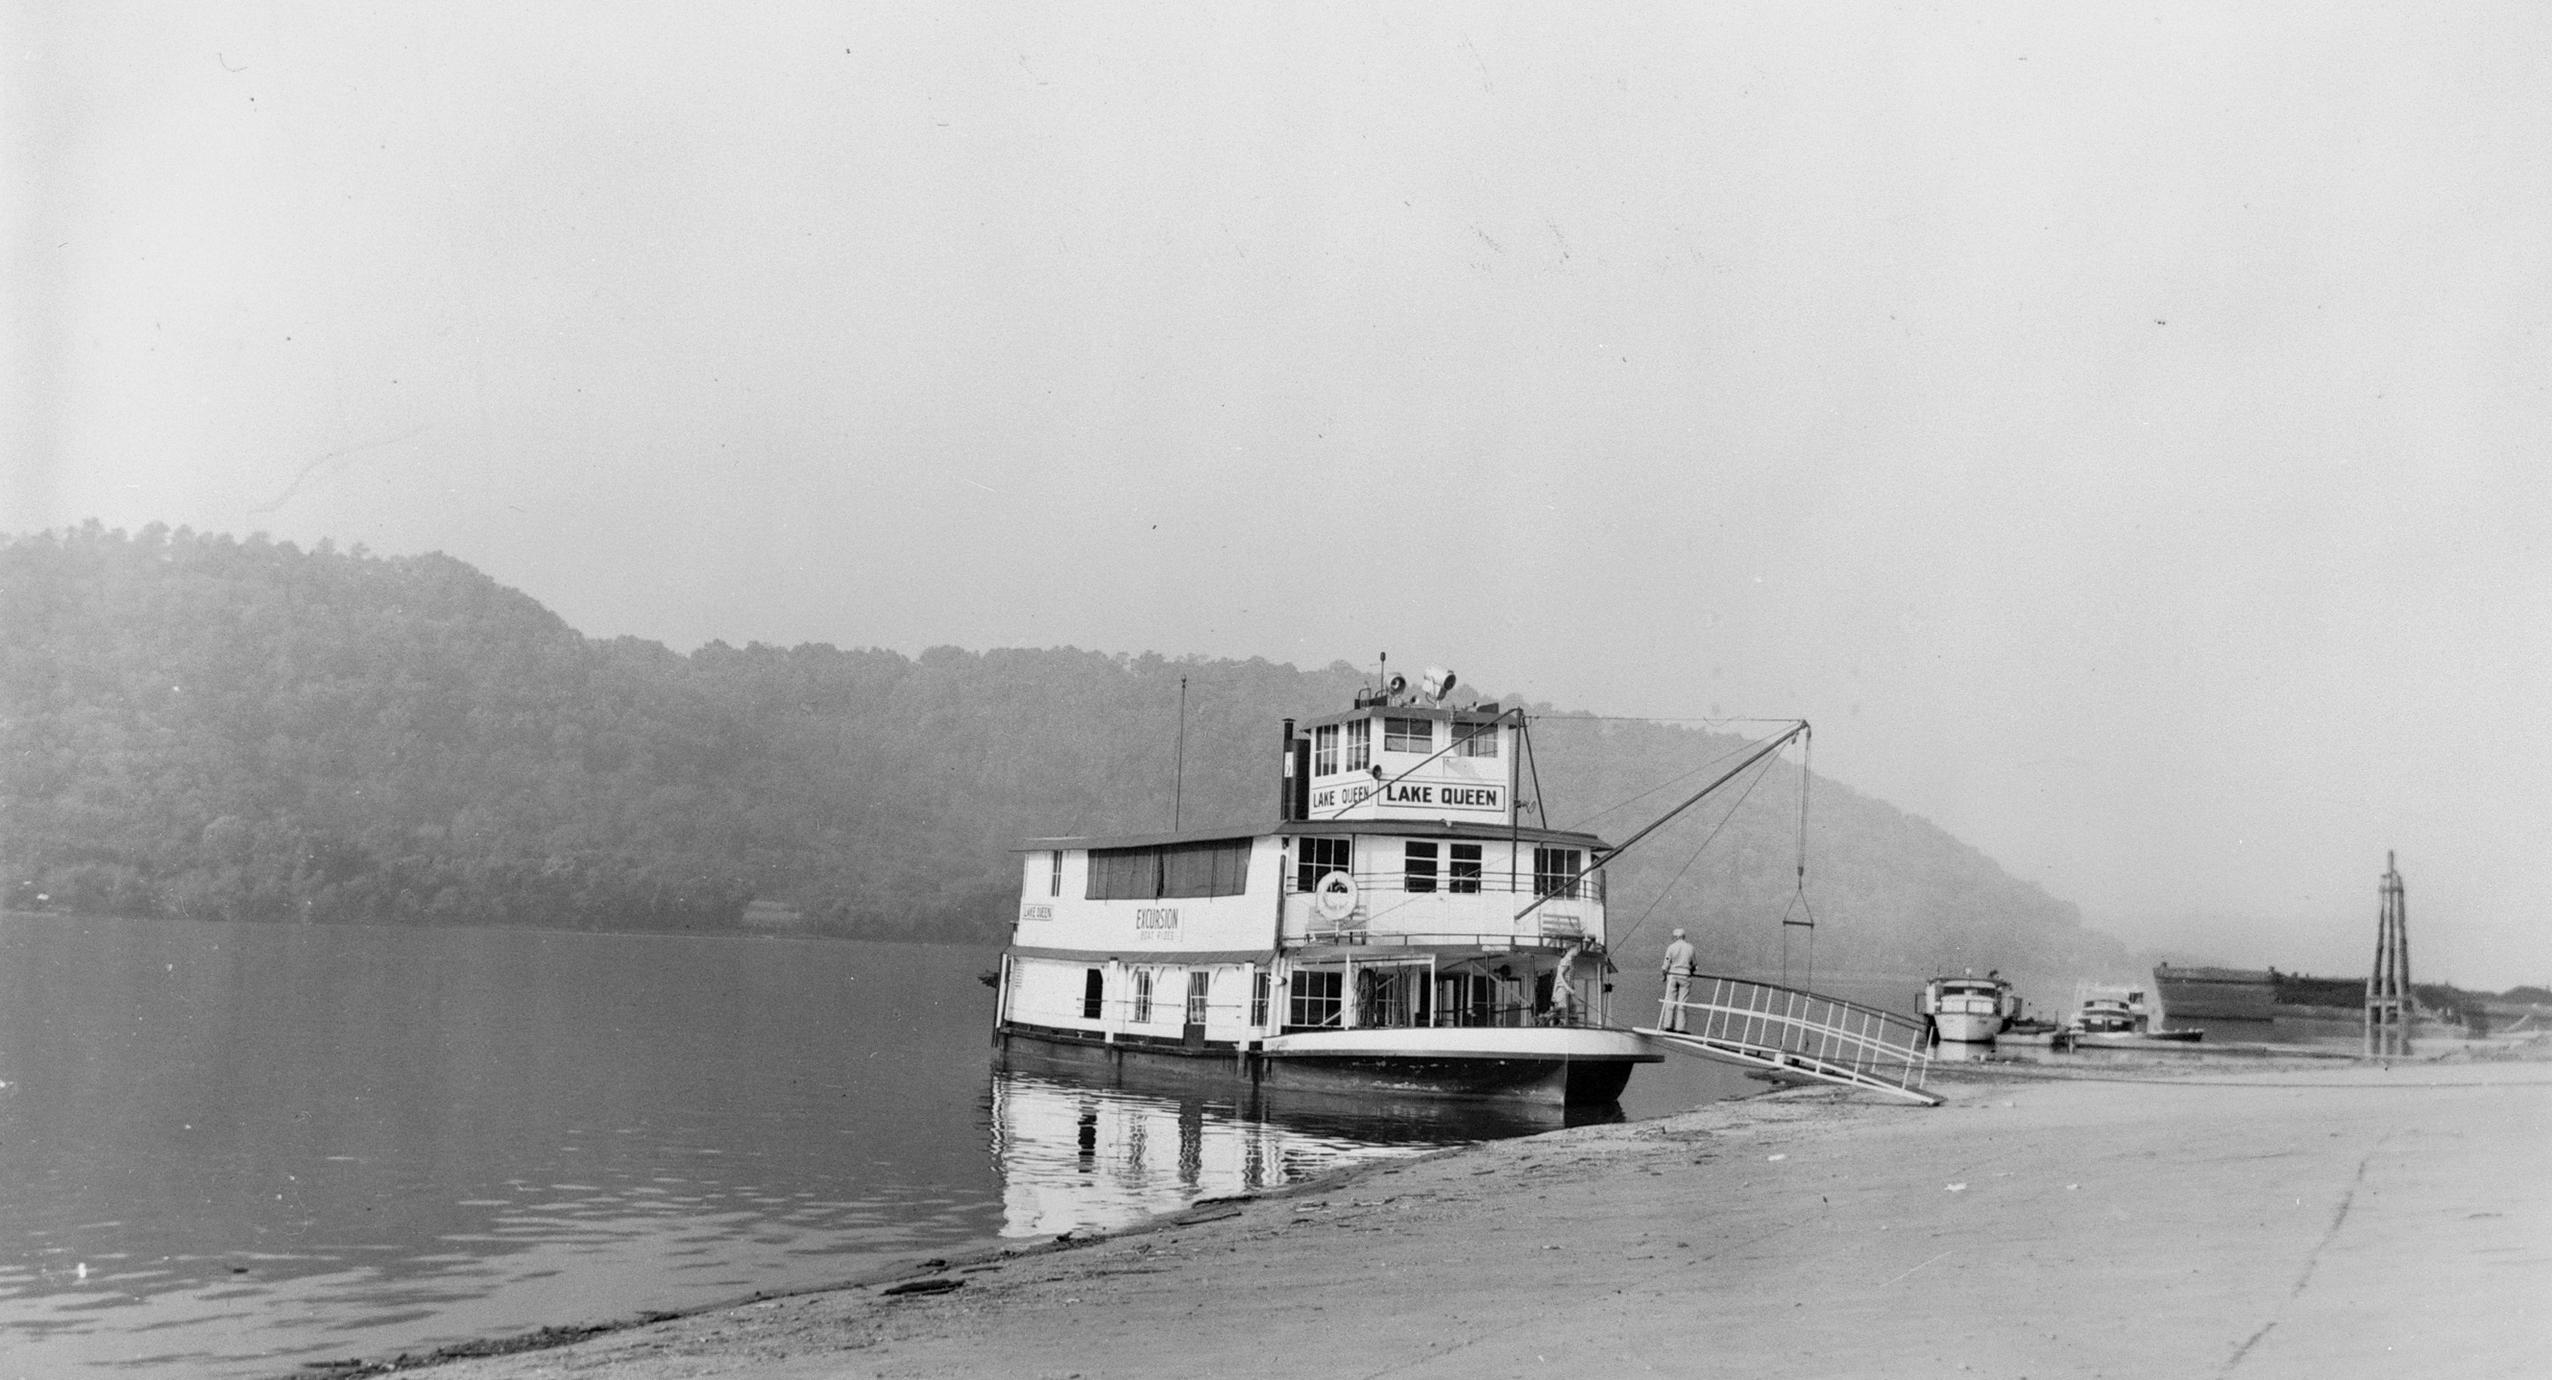 Lake Queen (Packet, 1959)